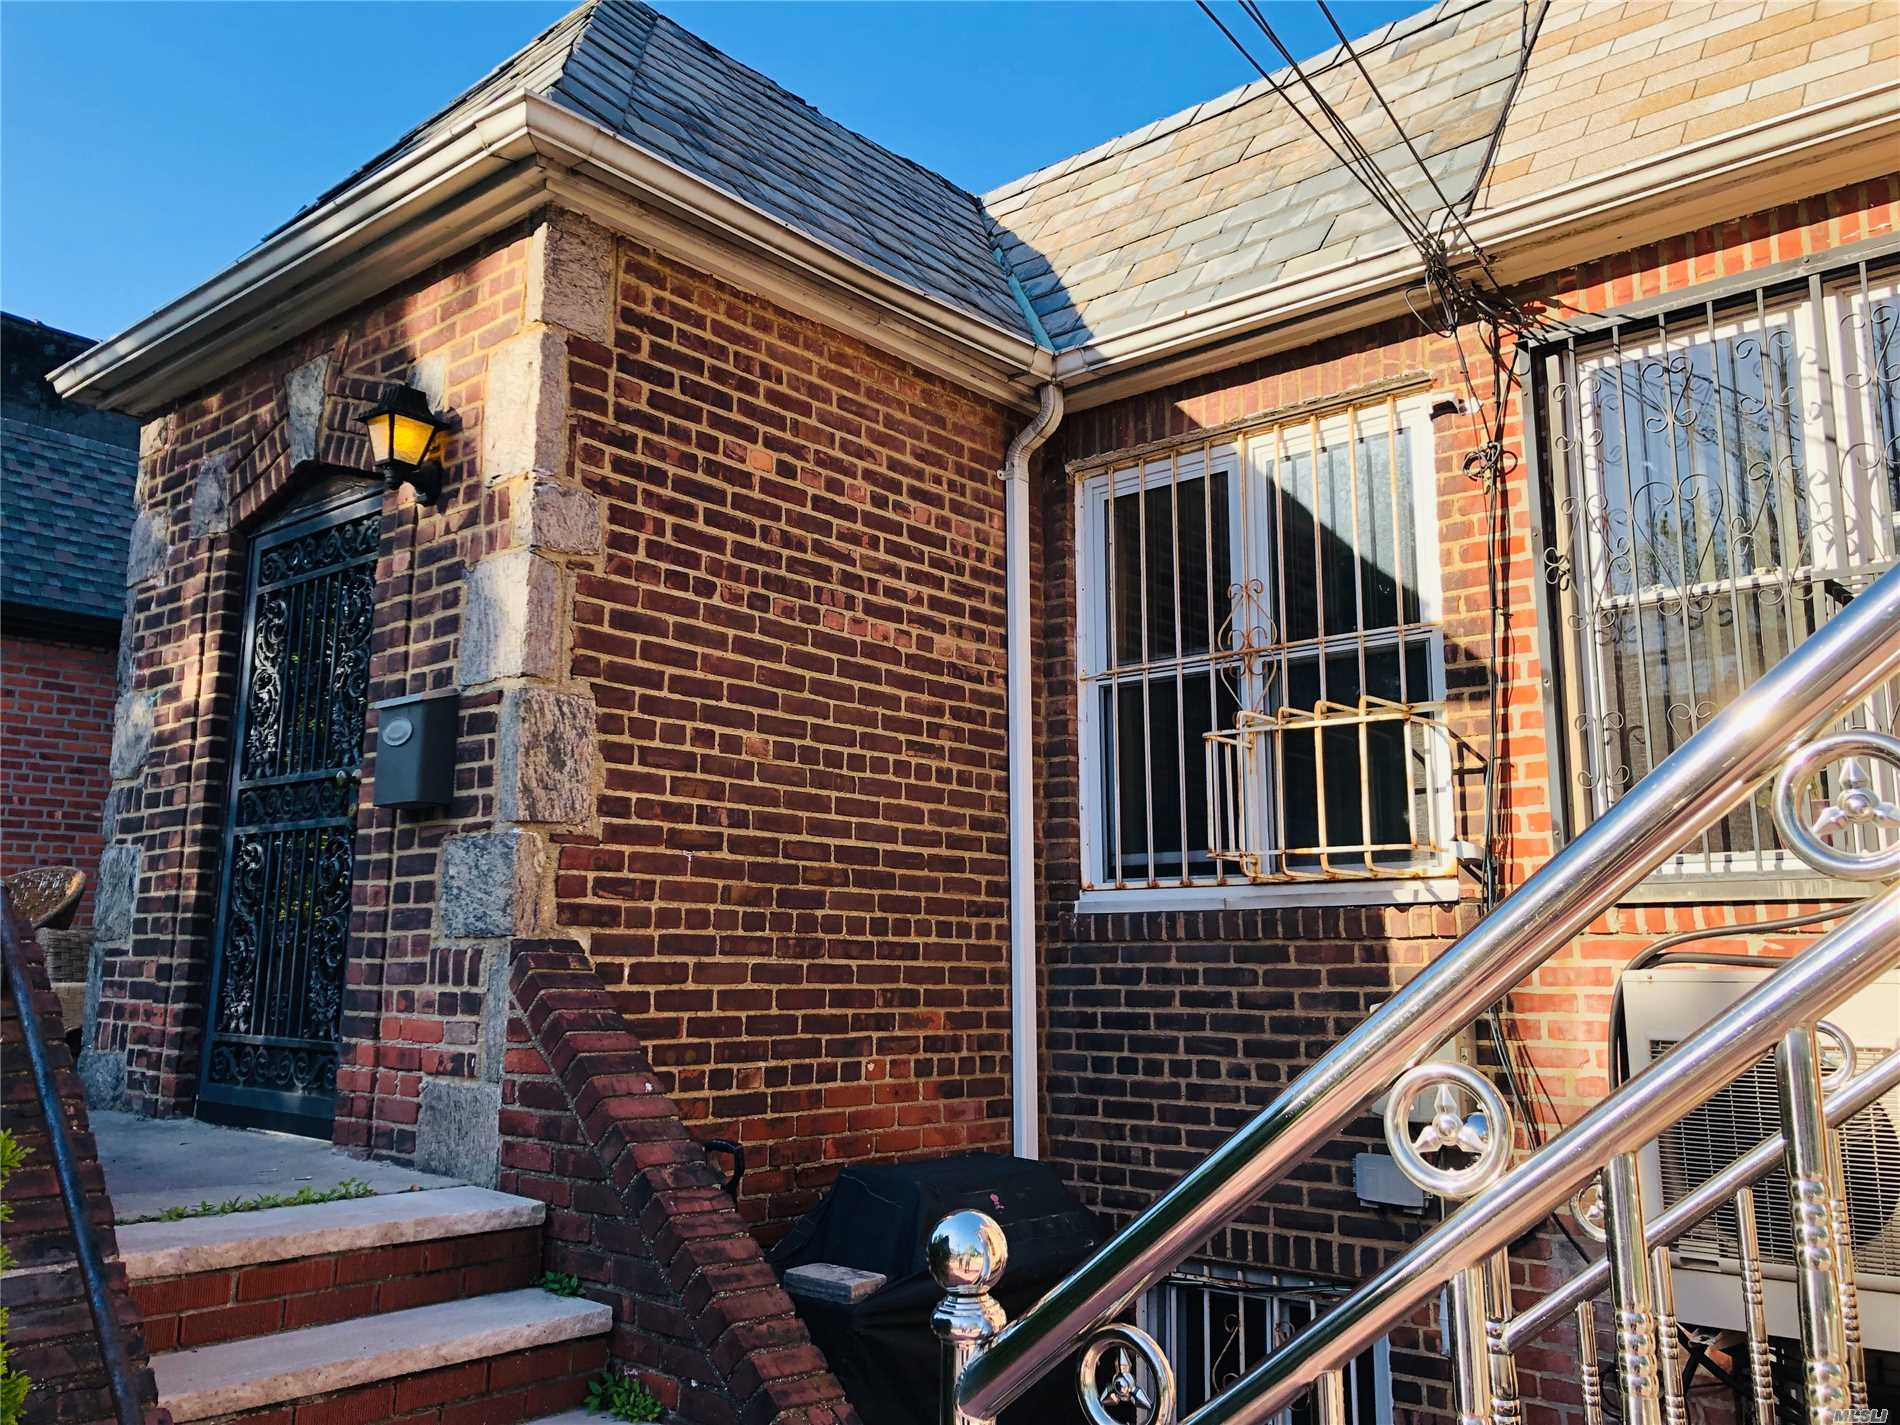 OVER-SIZE-BRICK TOWNHOUSE 22 X 136 =2992 LOT & 22 X 45.5 BUILDING, 2 LARGE BEDROOMS, 2 FULL-BATH, LARGE LIVING Rm, KITCHEN/DINING Rm. THE BASEMENT HAS LOTS OF POTENTIAL, SITUATE BY THE VICINITY OF REGO PARK CRESCENT, EXCELLENT SCHOOL DISTRICT, PS 174, WALKING DISTANCE TO SUBWAY 63 DRIVE STATION R&M TRAIN, RESTAURANTs, SUPER MARKETs COSTCO, STARBUCKS ETC.